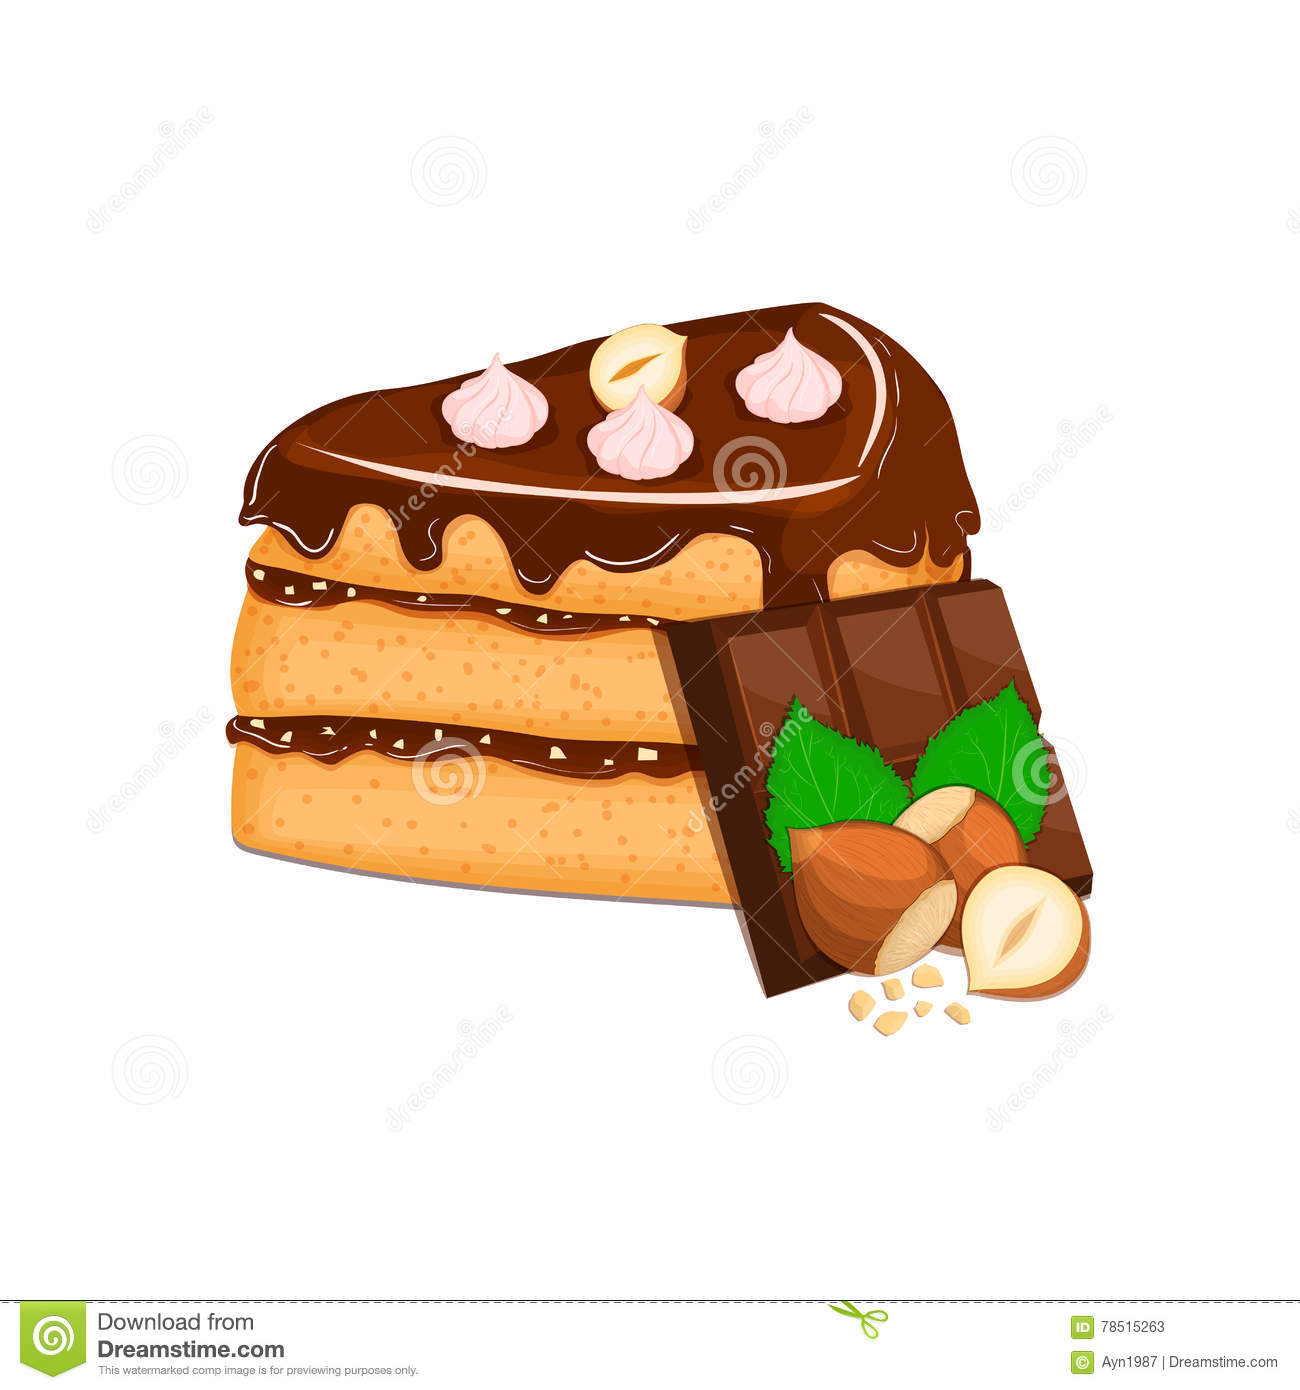 Piece Of Cake With Nuts And Chocolate Bar. Vector Sliced Portion.